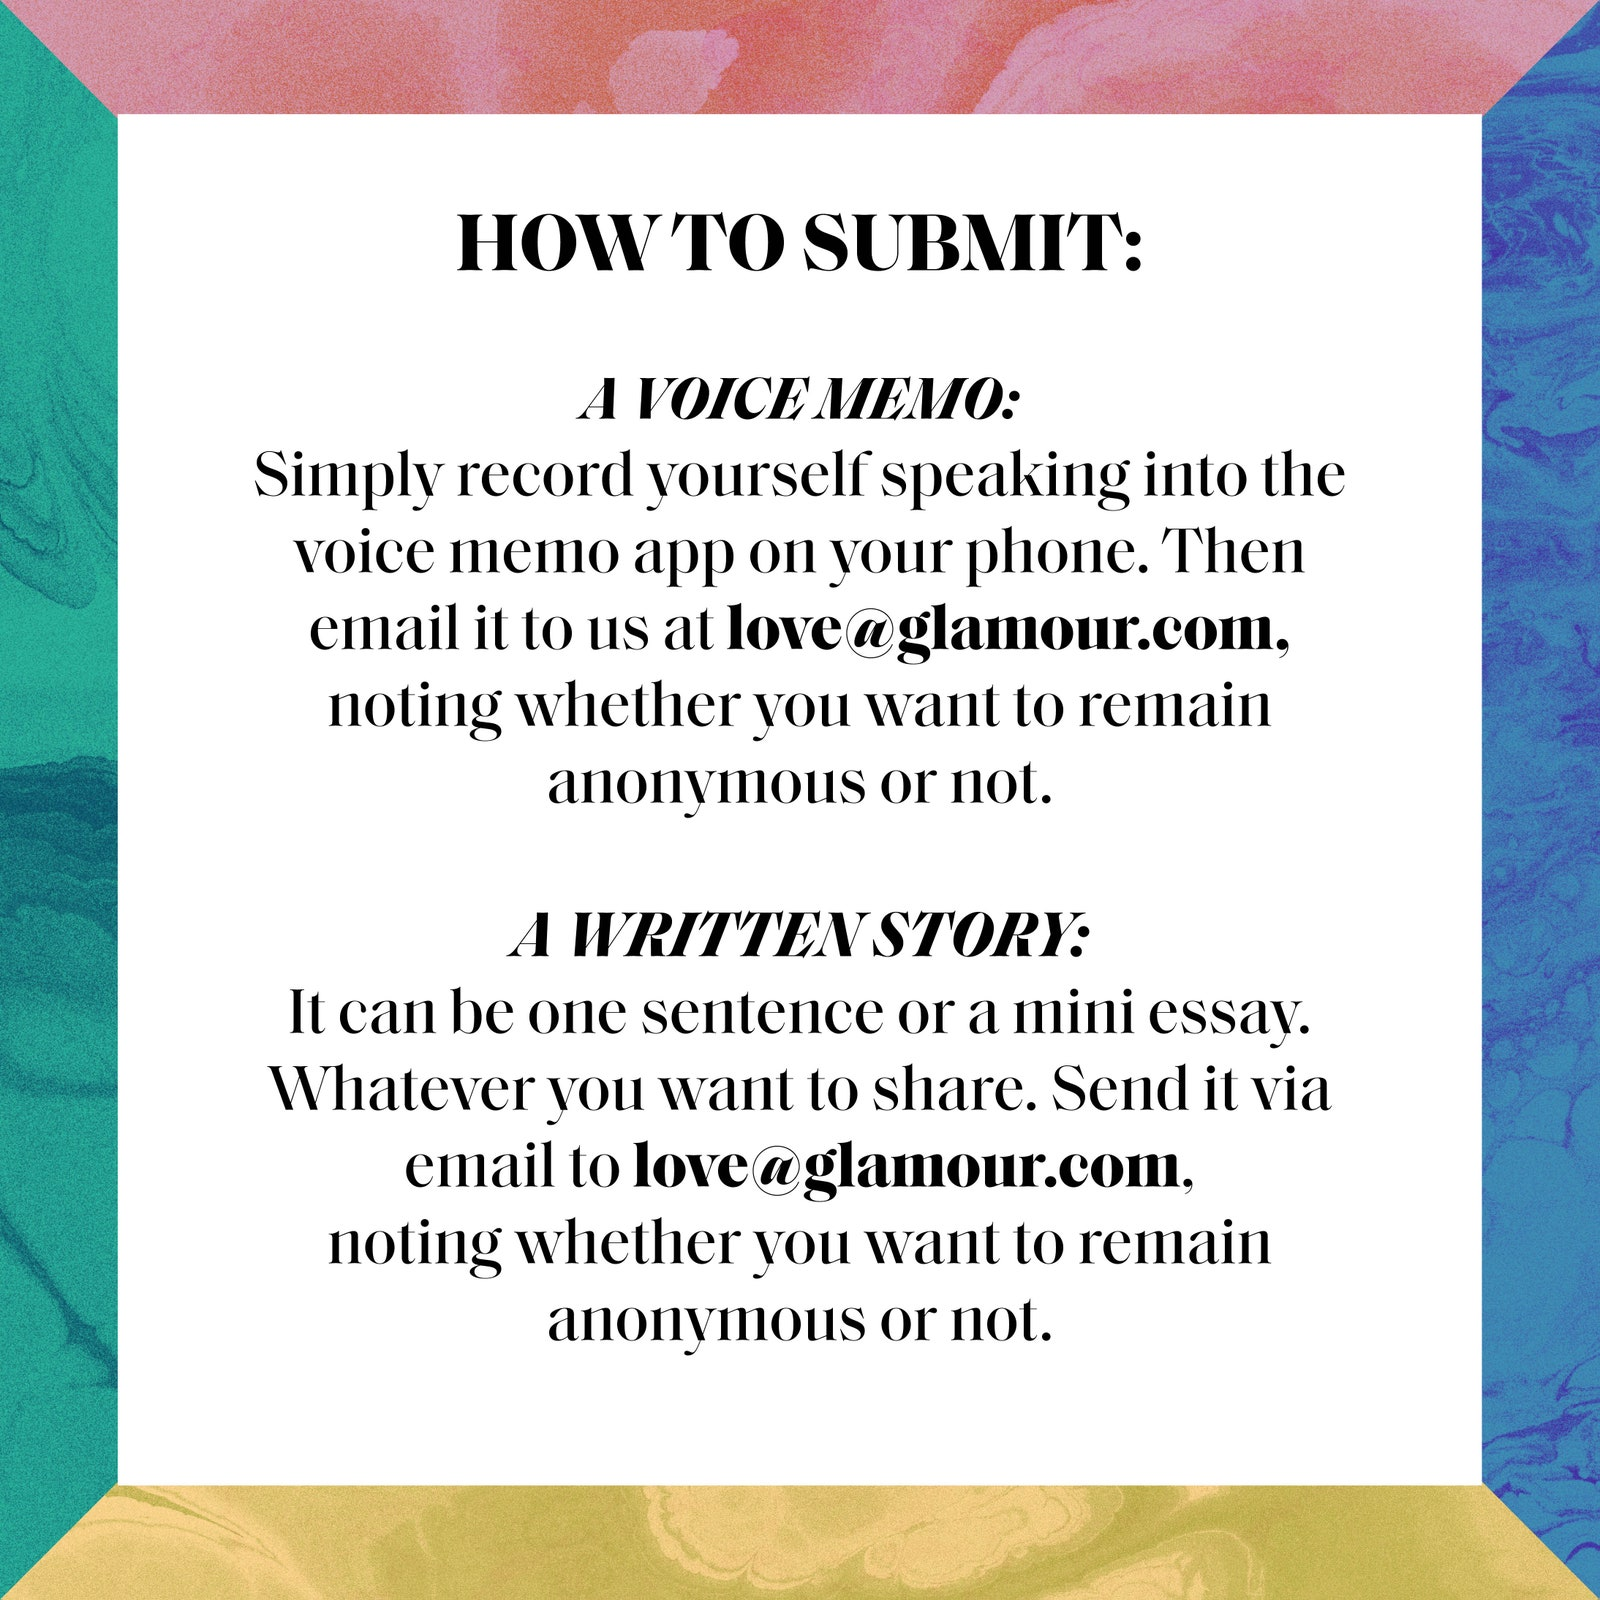 how to share your story with Glamour